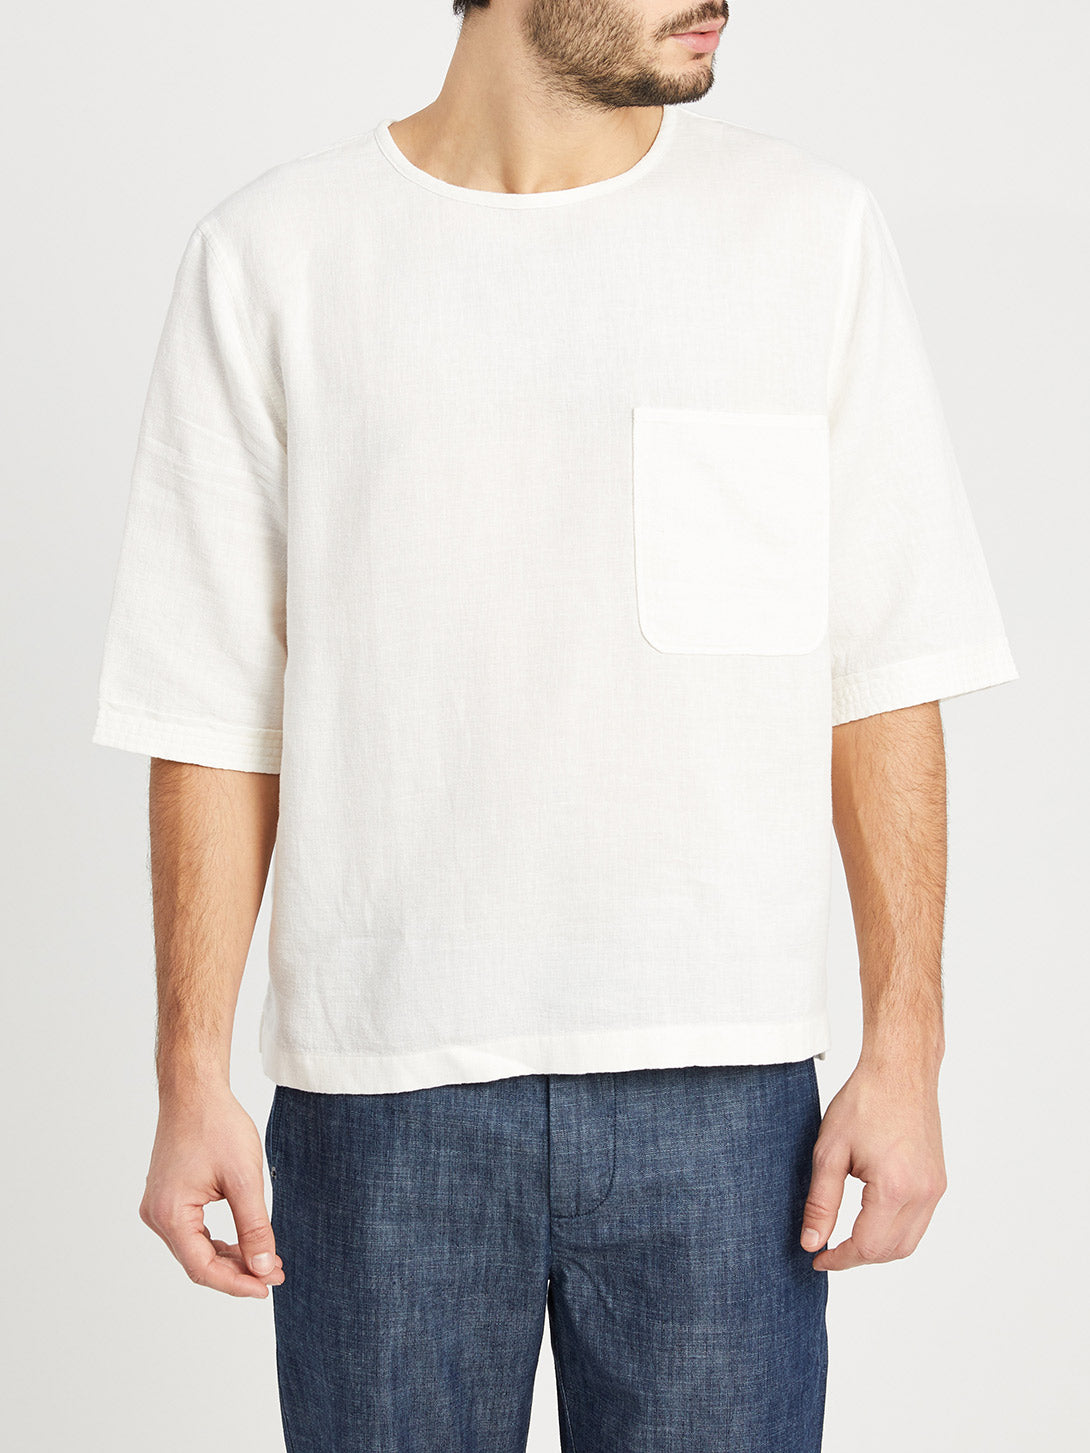 WHITE t shirts for men baseile pocket tee ons clothing